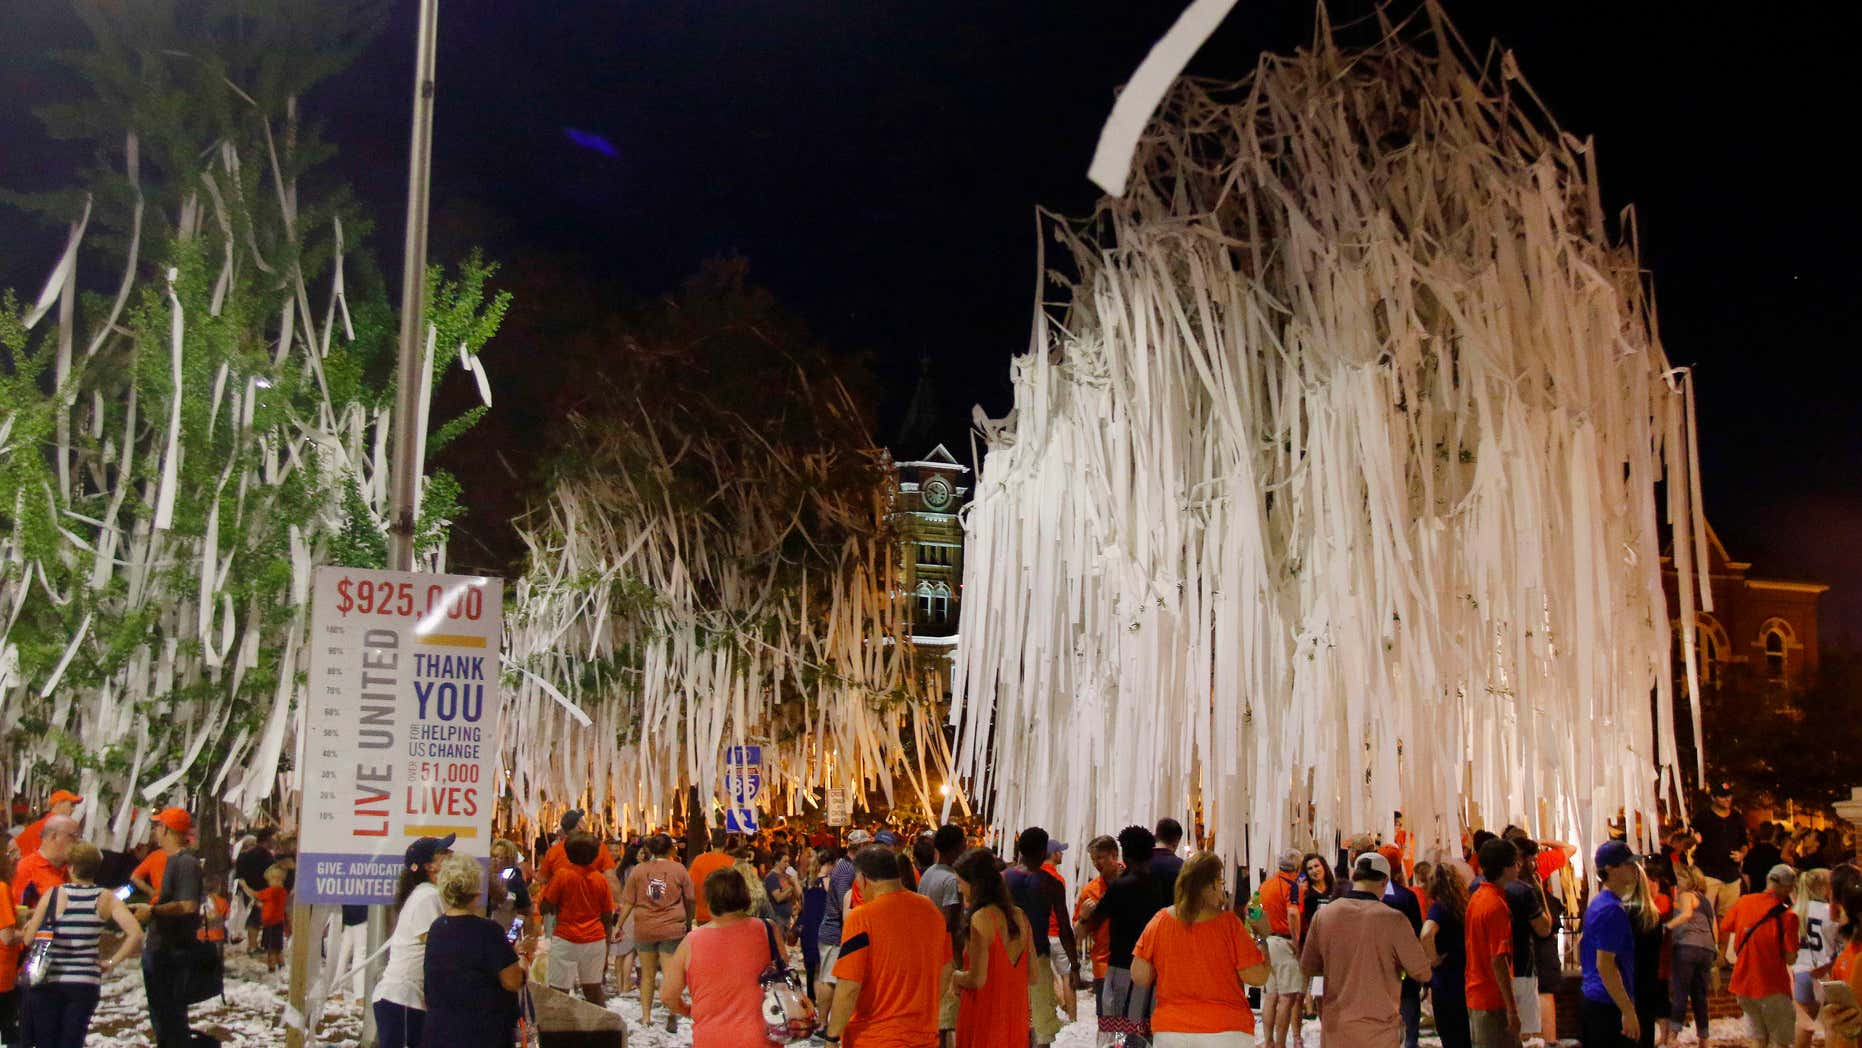 Fans celebrate at Toomer's Corner after Auburn defeated LSU 18-13 in an NCAA college football game Saturday, Sept. 24, 2016, in Auburn, Ala.